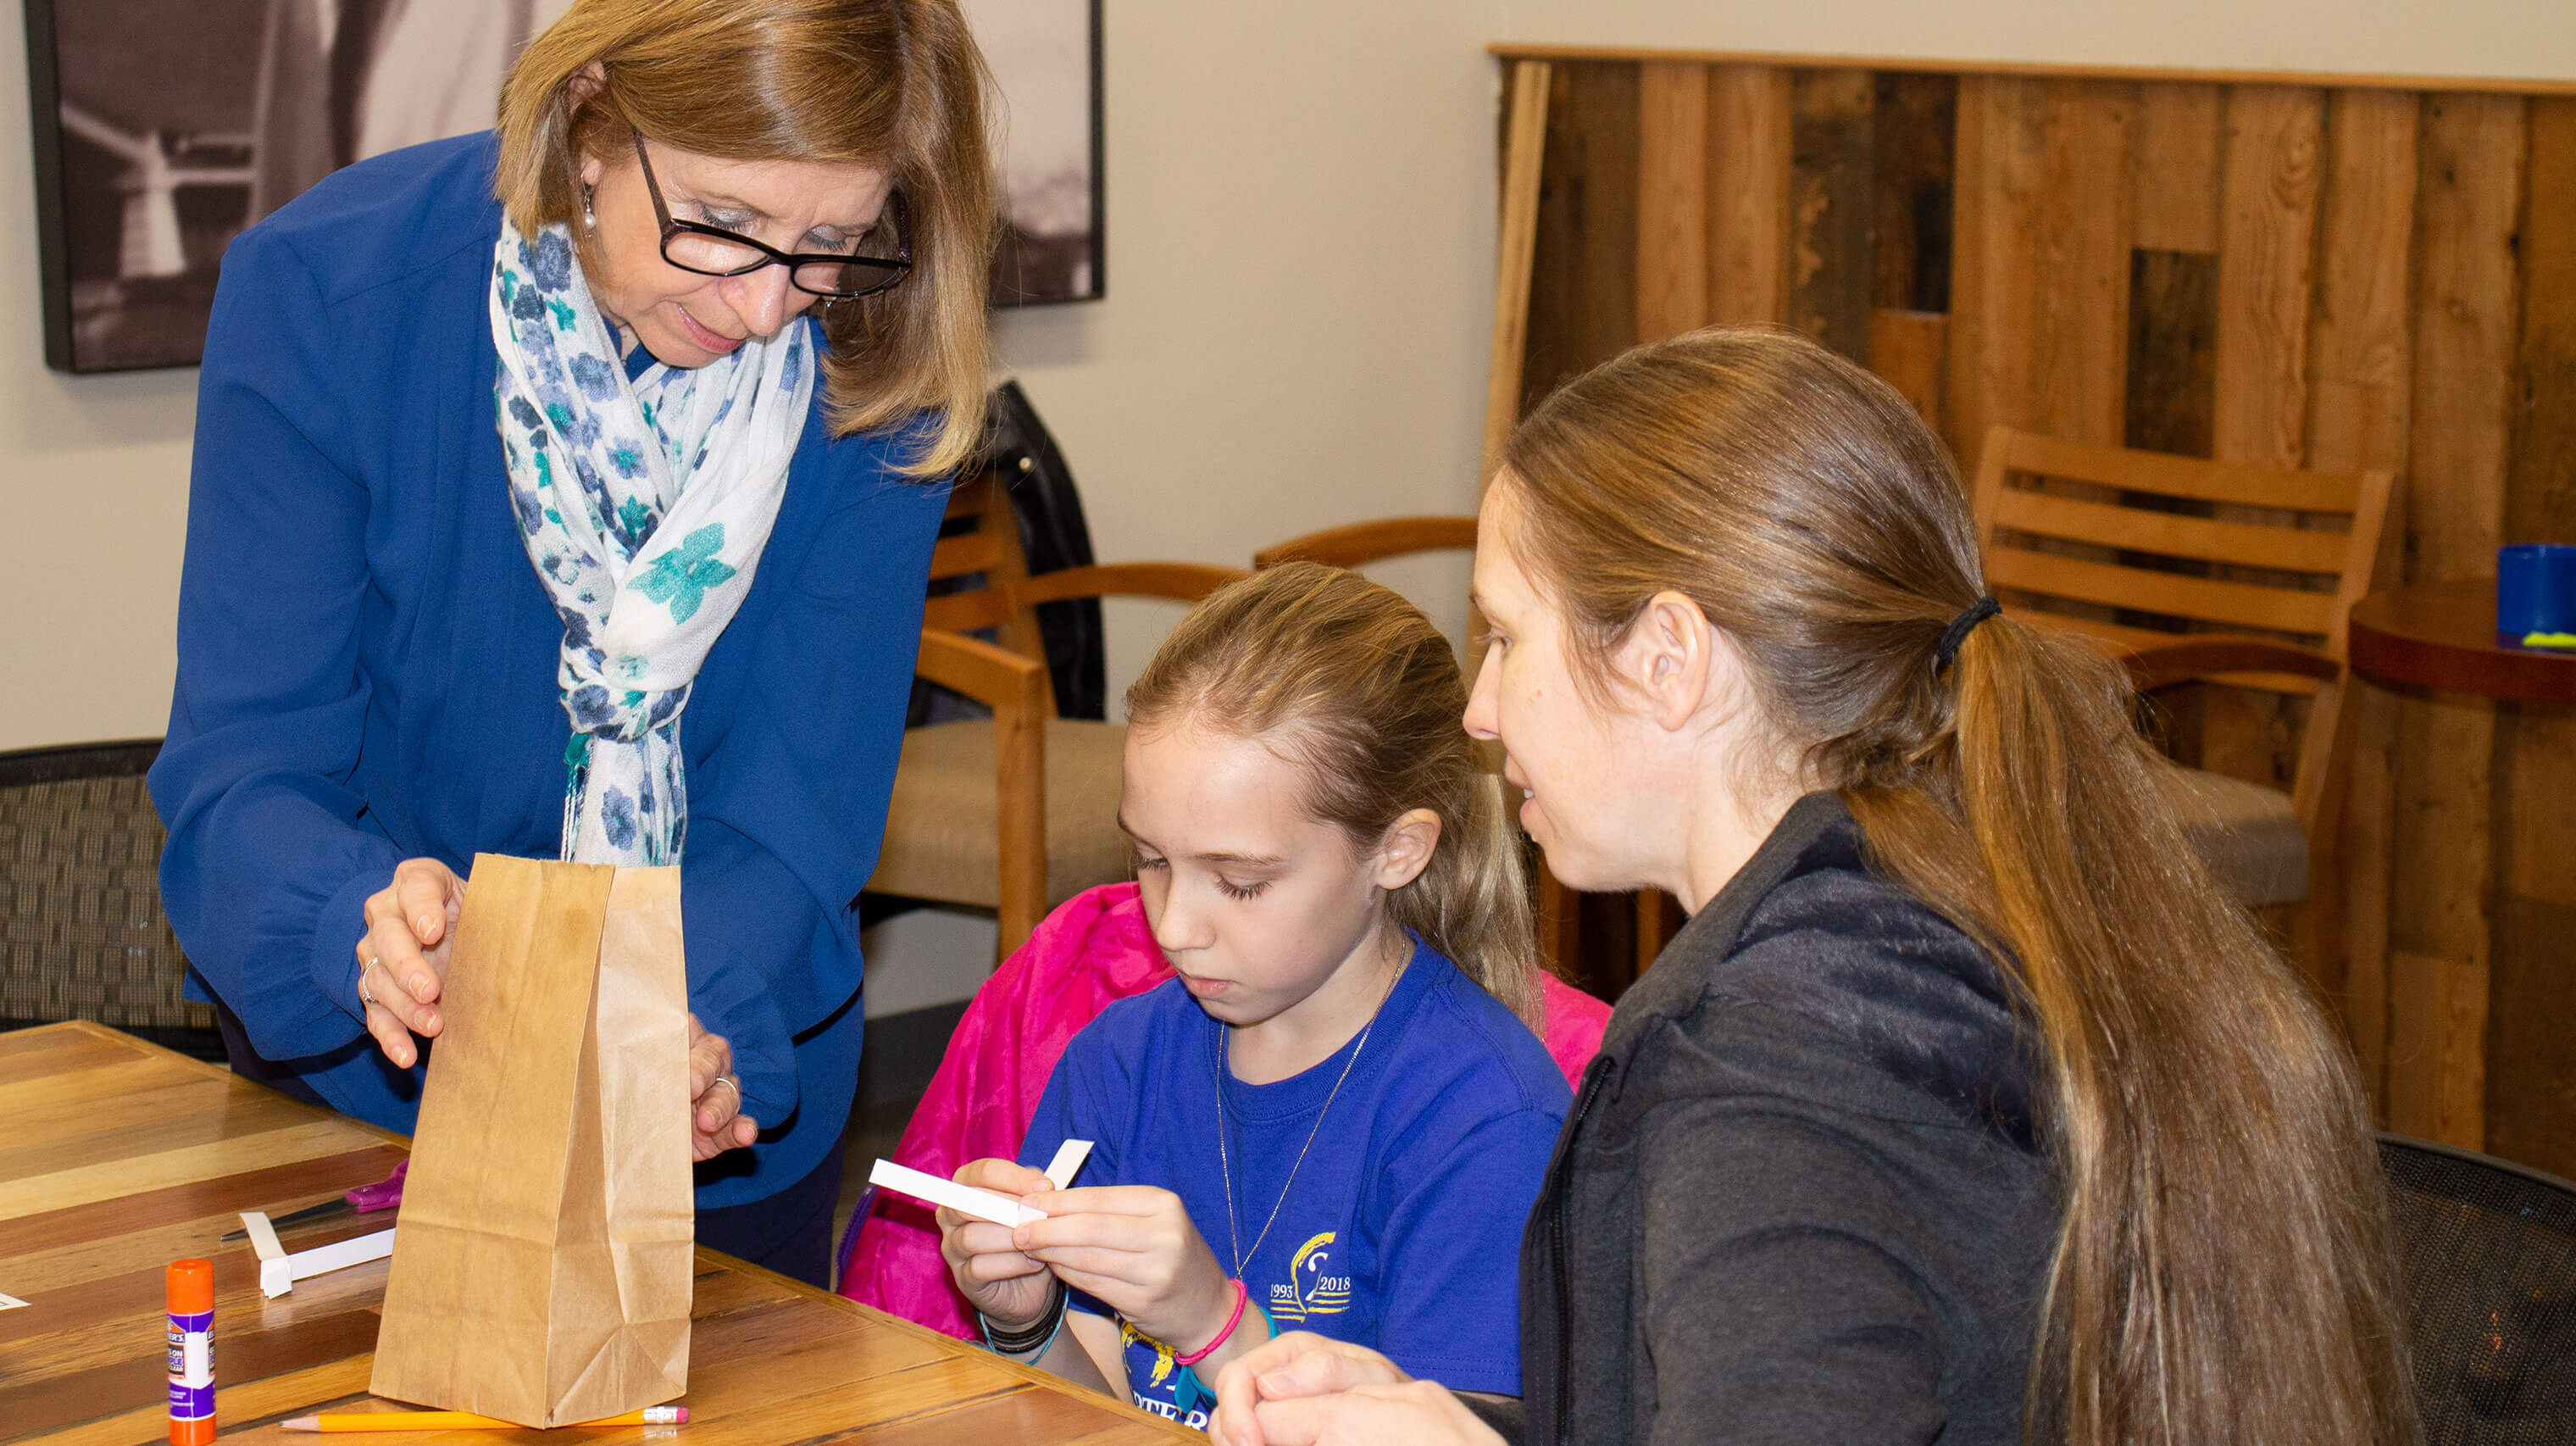 Horizon's Parent Educator works with families at workshops